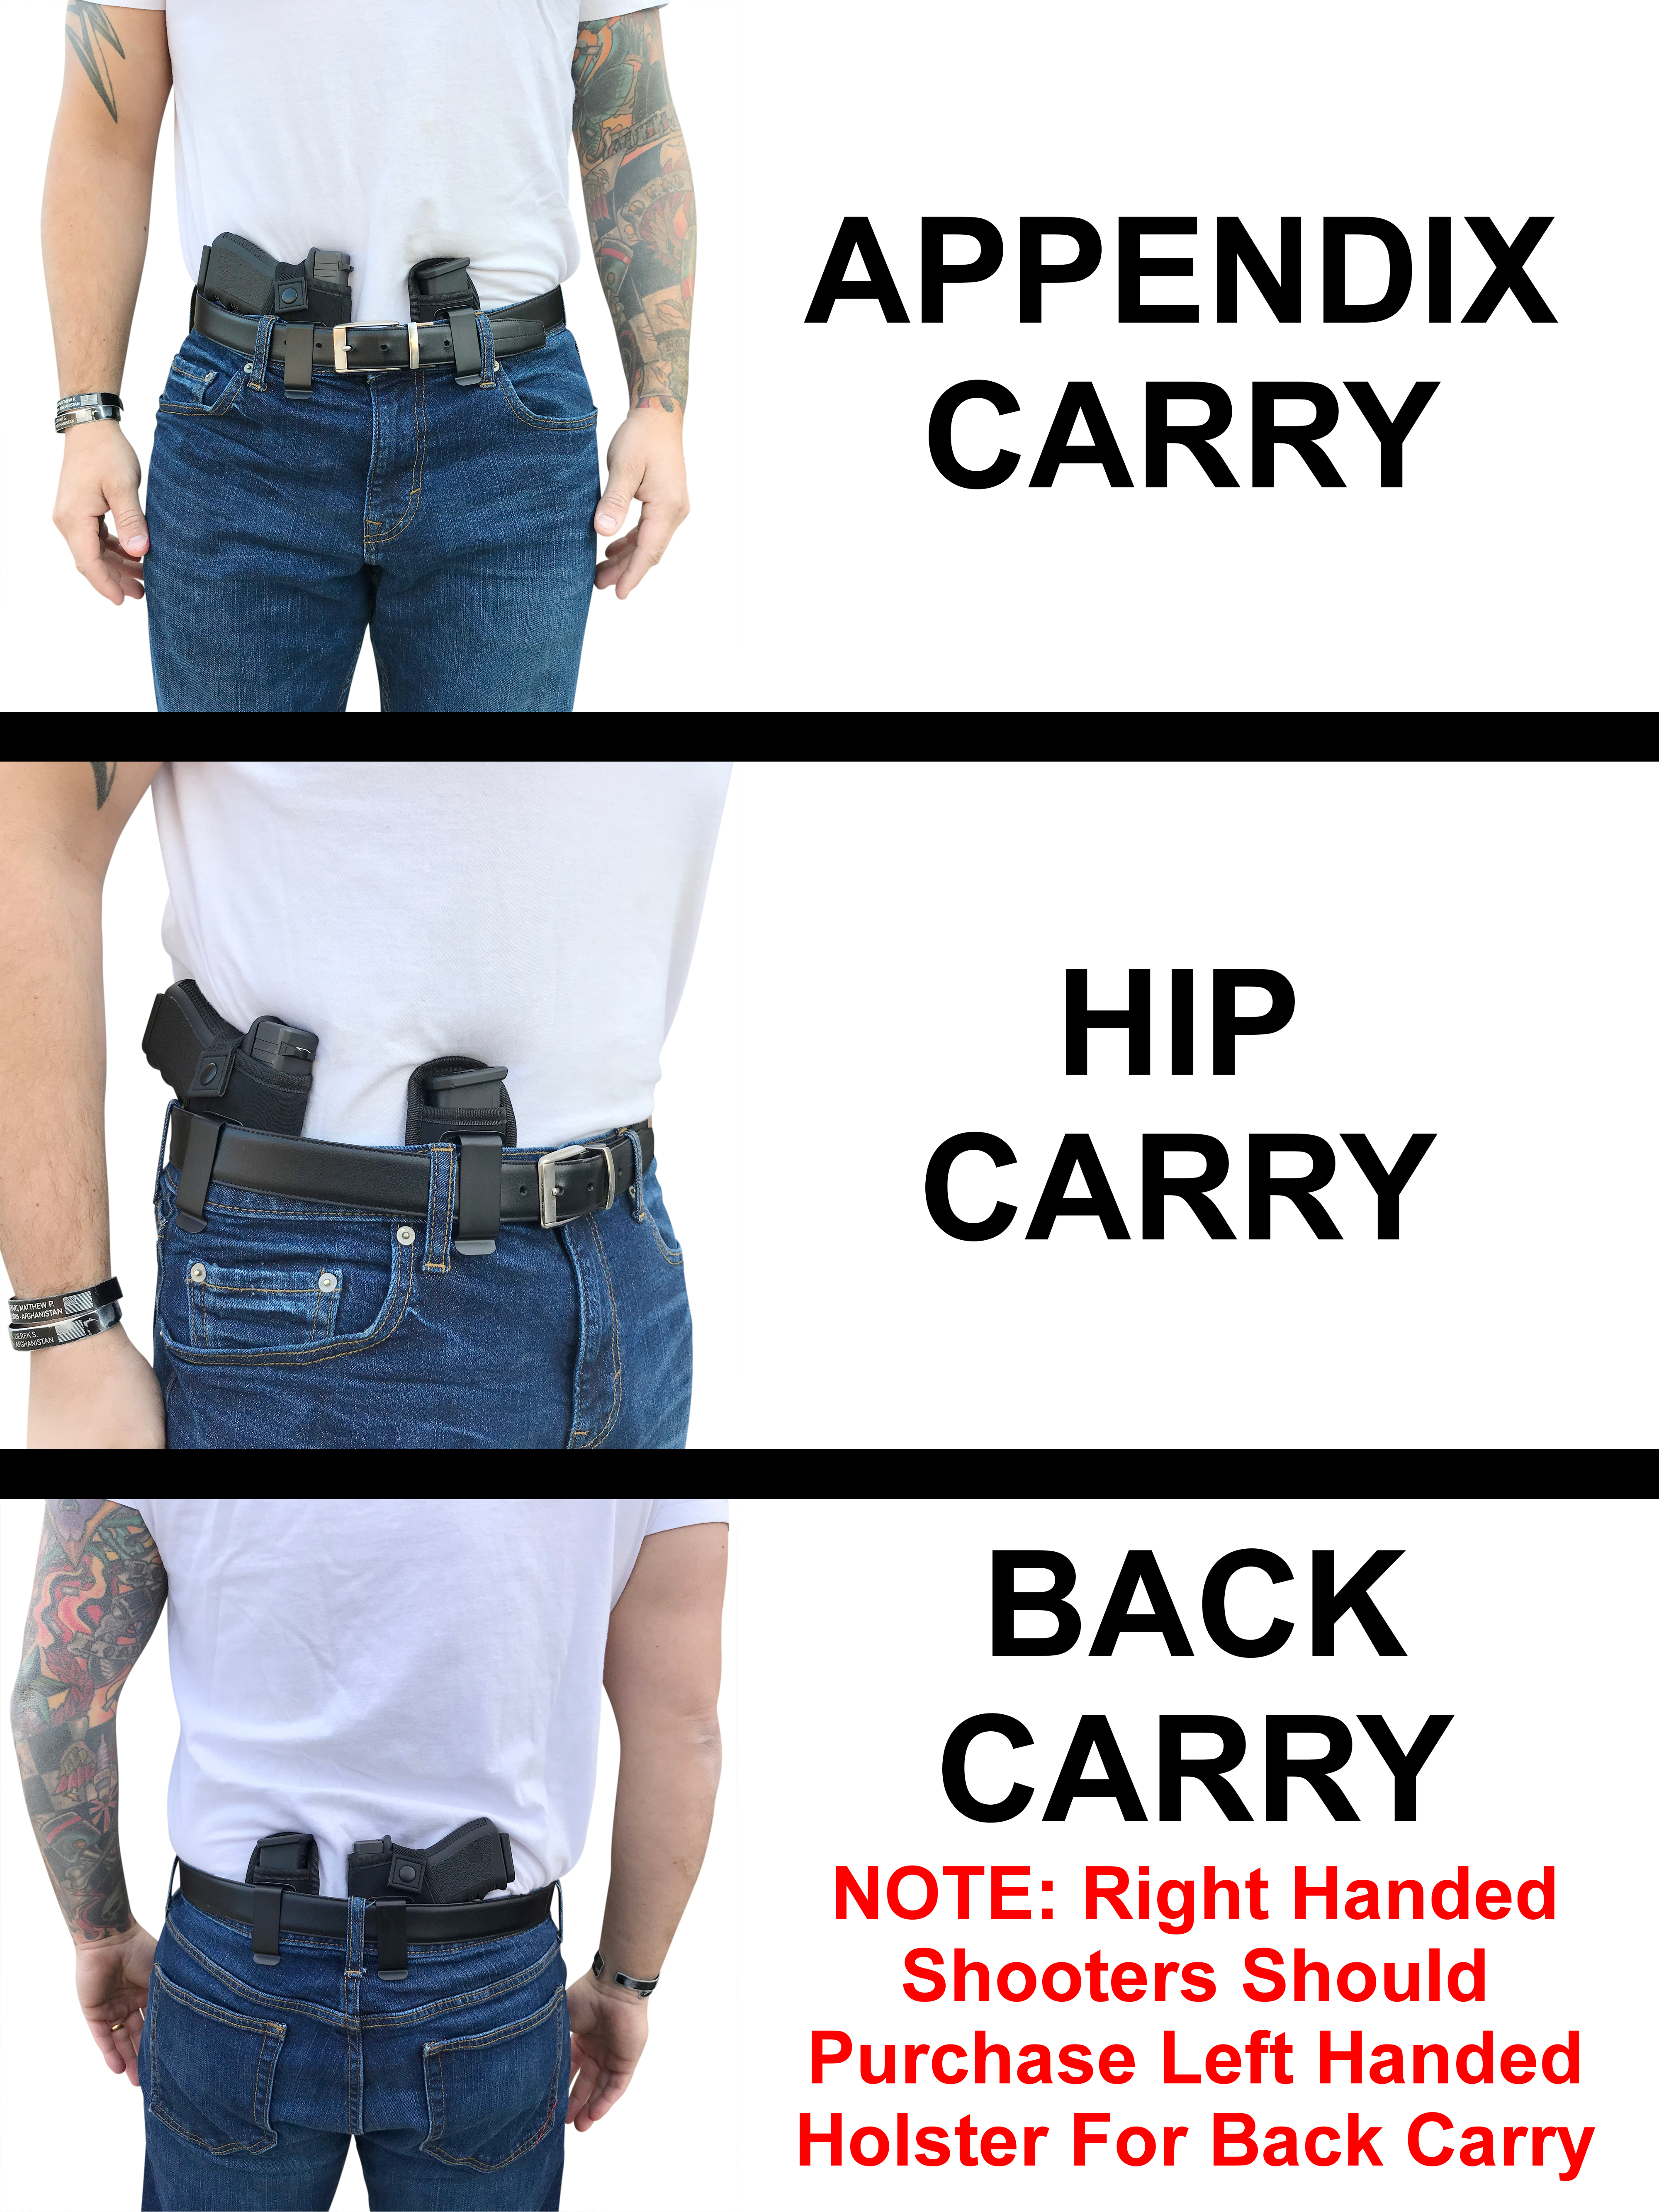 Universal IWB Holster For Concealed Carry | Inside The Waistband | Fits all  firearms S&W M&P Shield 9/40 1911 Taurus PT111 G2 Sig Sauer Glock 19 17 27